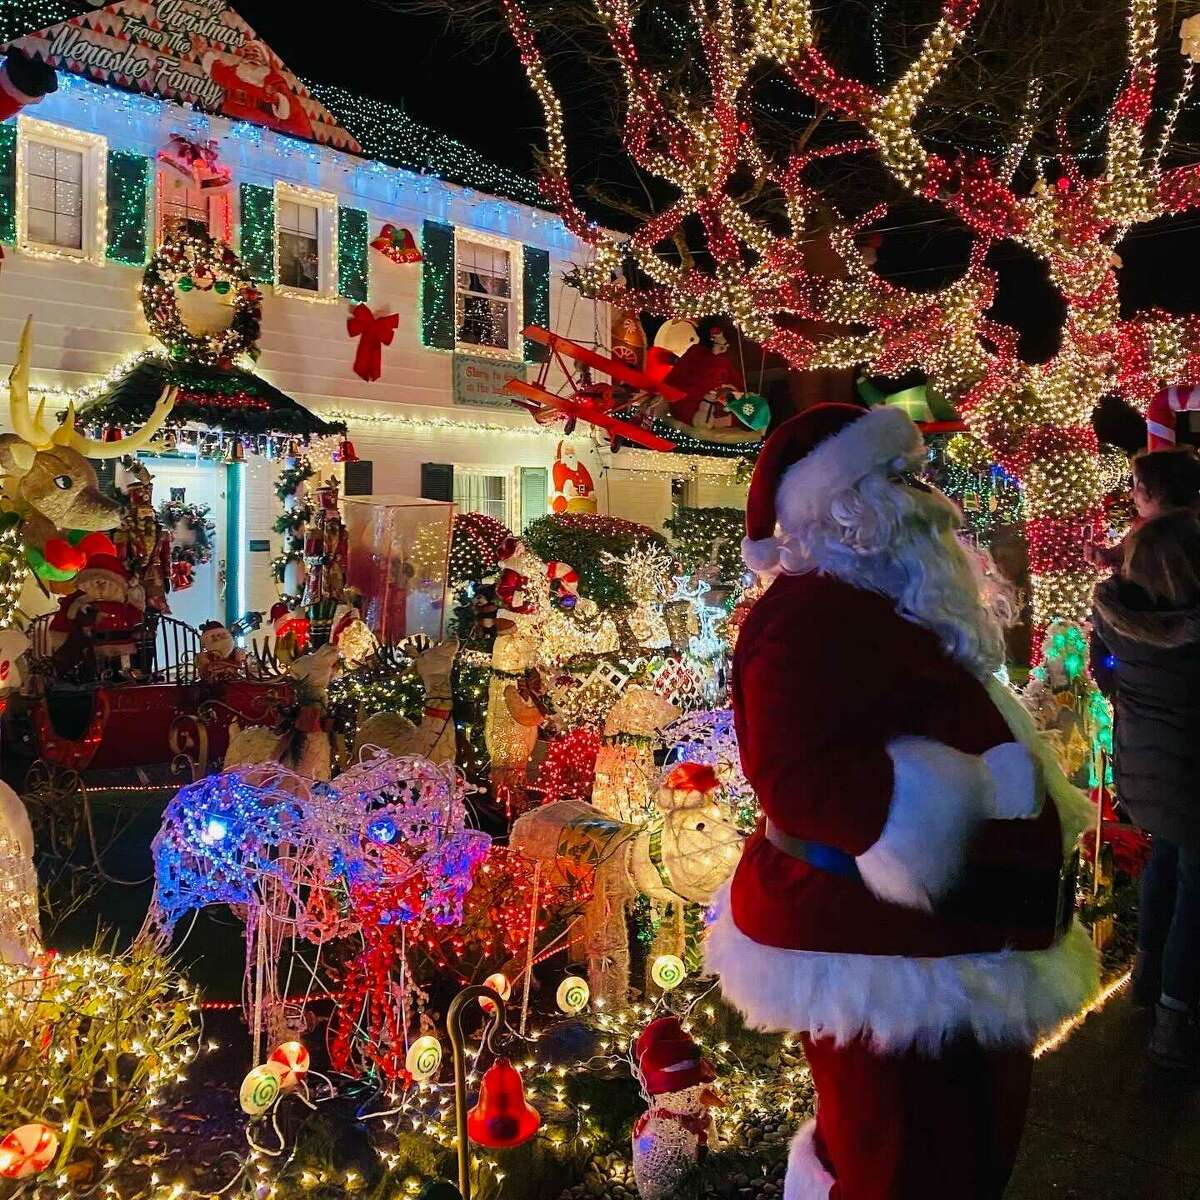 The Menashe family typically displays a gargantuan festive lighting at their home in West Seattle. Their display typically runs 5 p.m.-11 p.m. from the Sunday after Thanksgiving through January 1 at the 5600 block of Beach Drive. The Gai Family house also tends to host a large display at the 3200 block of 36th S.W.